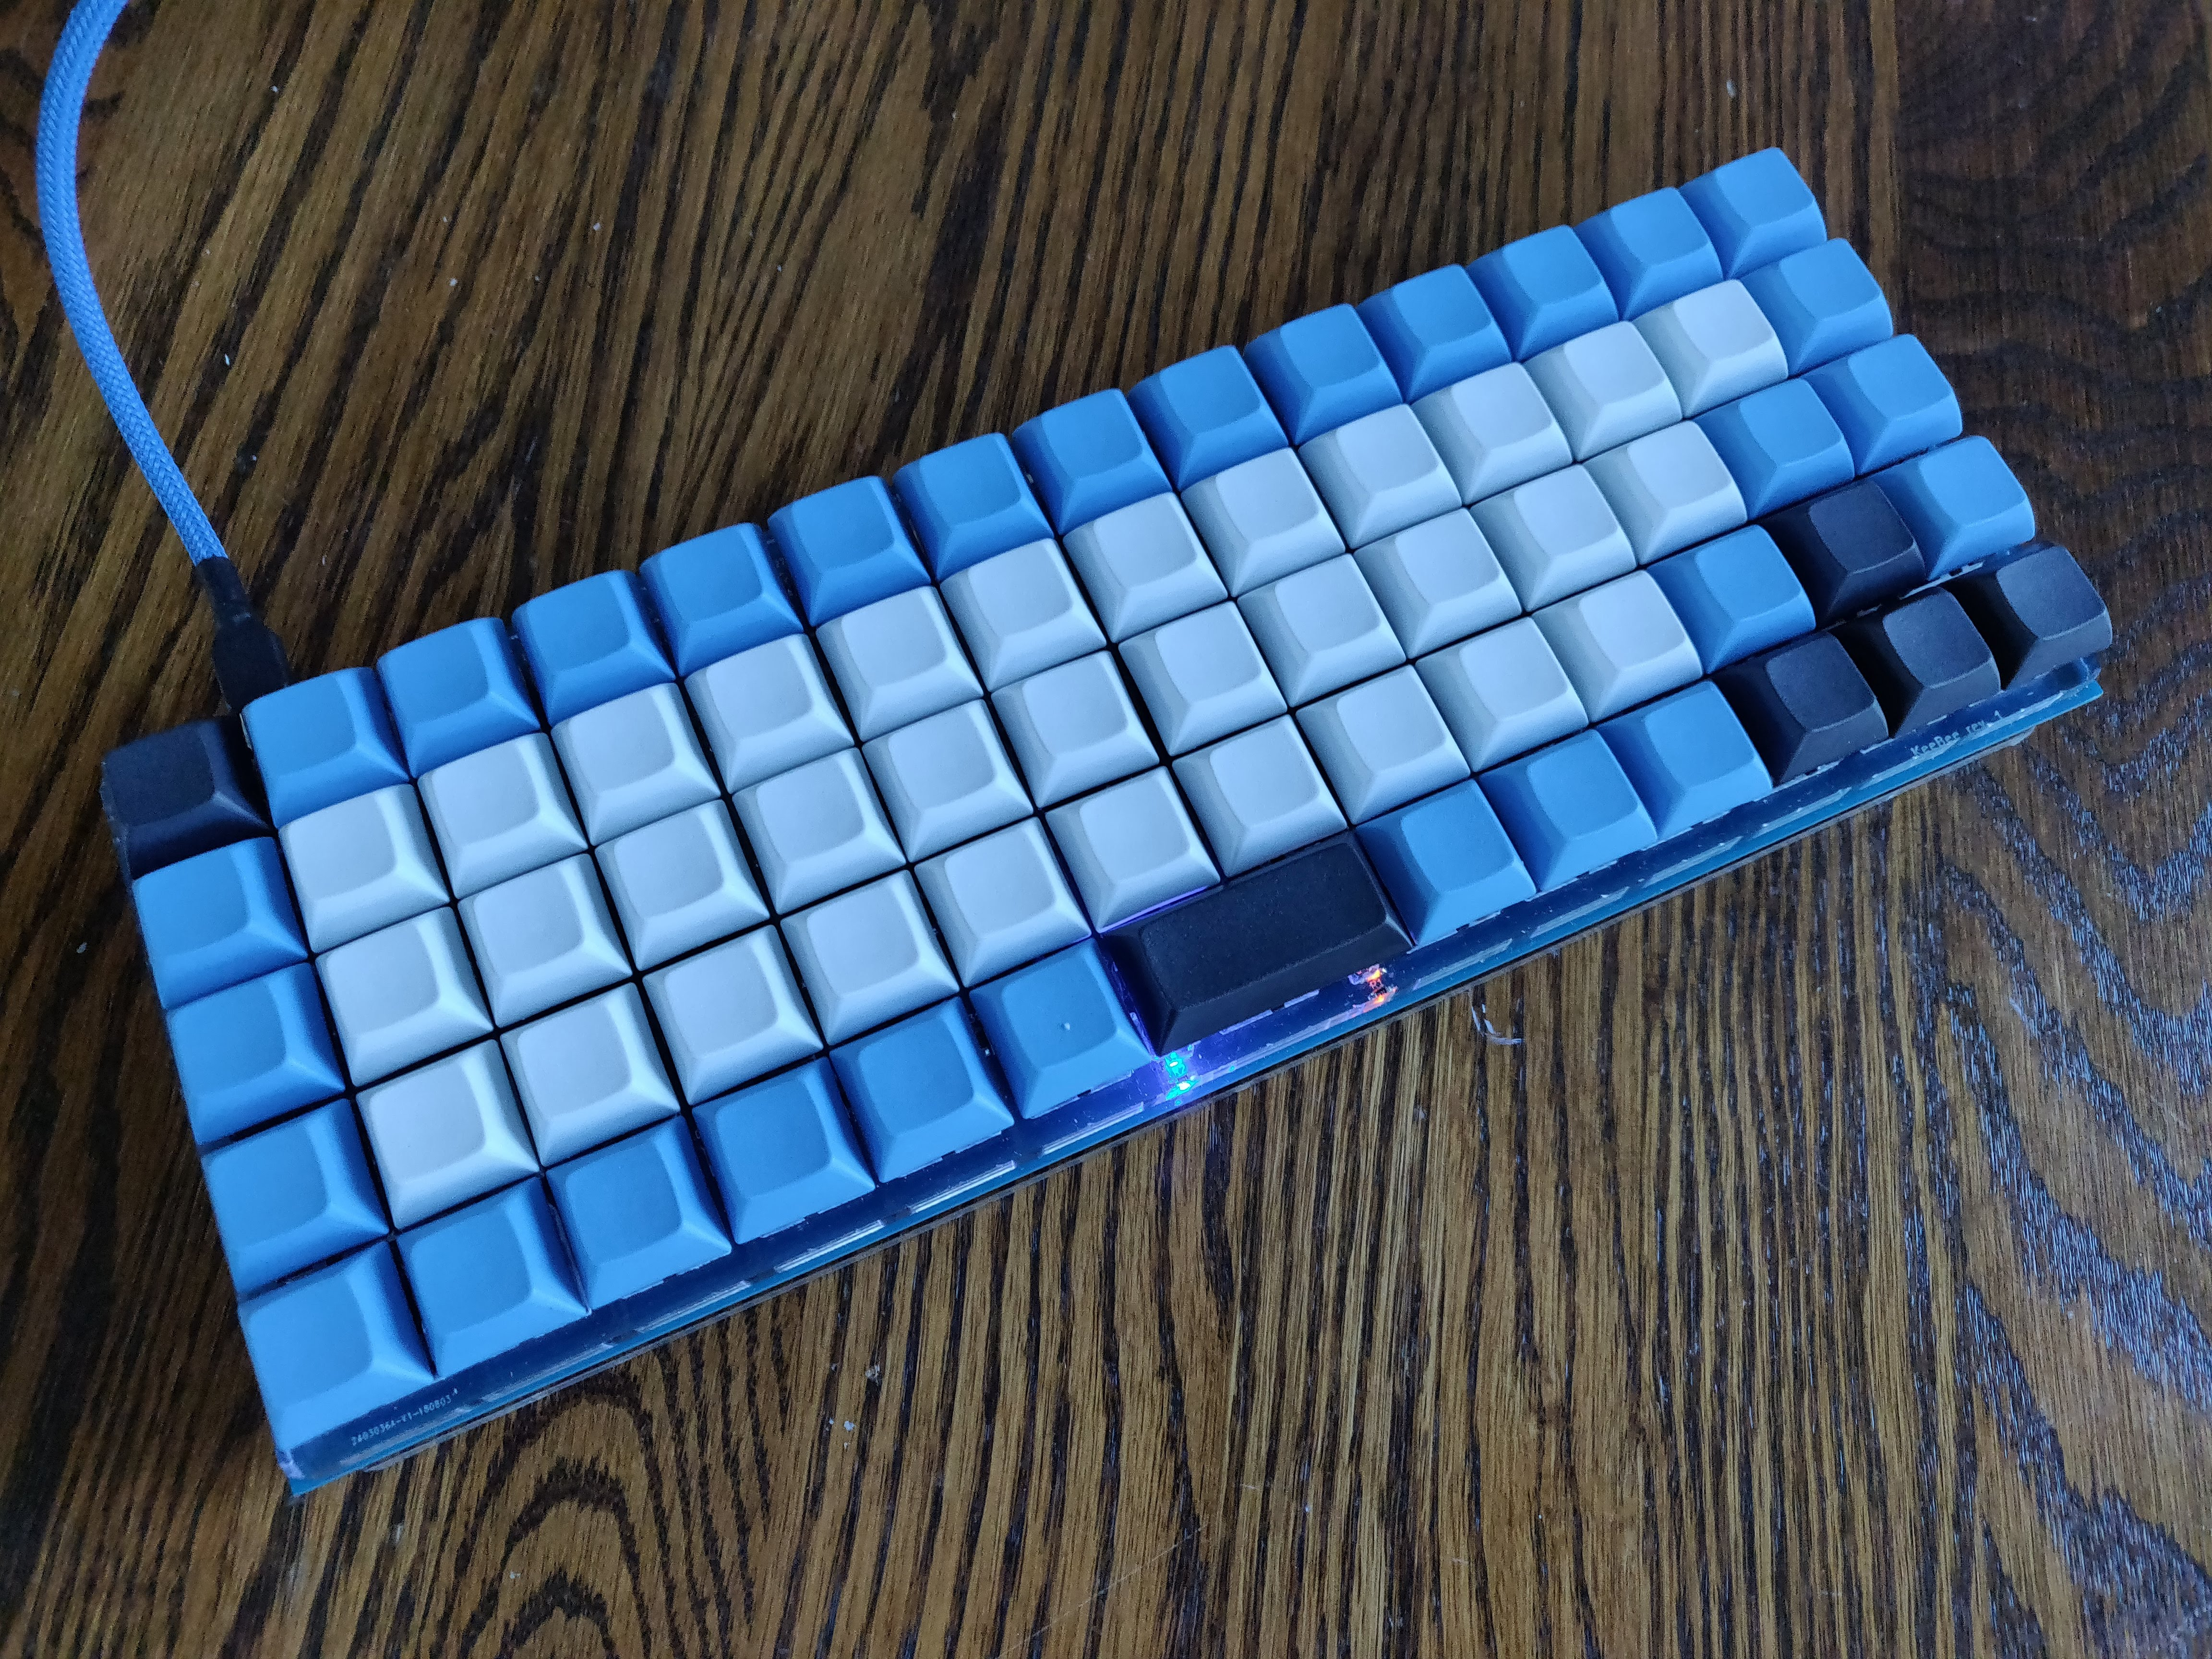 Making My Own USB Keyboard From Scratch » Blake Smith